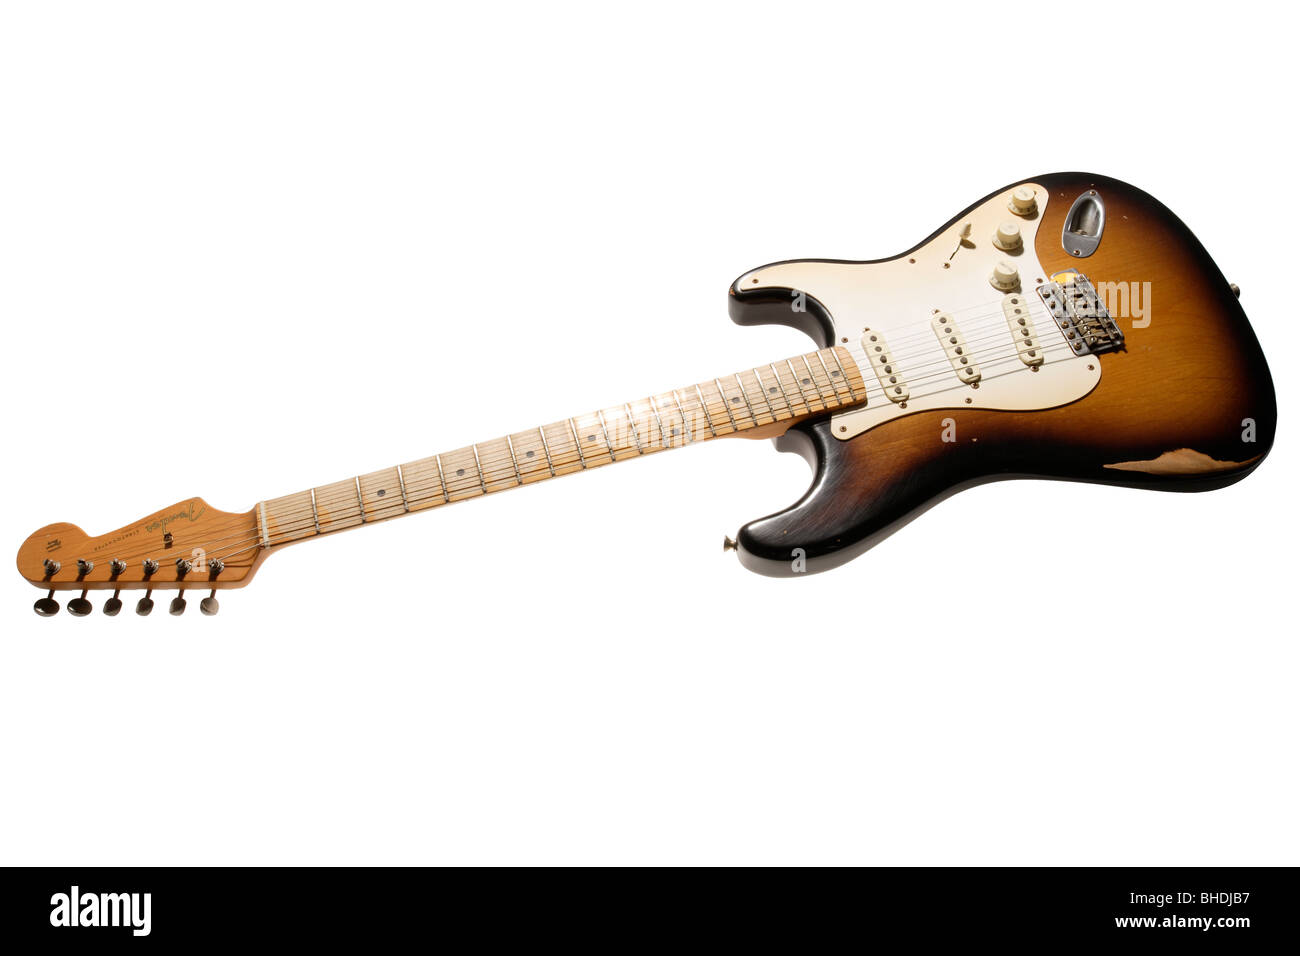 Electric Guitar Parts Stock Photos Need To Know The Of Fender Stratocaster Worn In Image